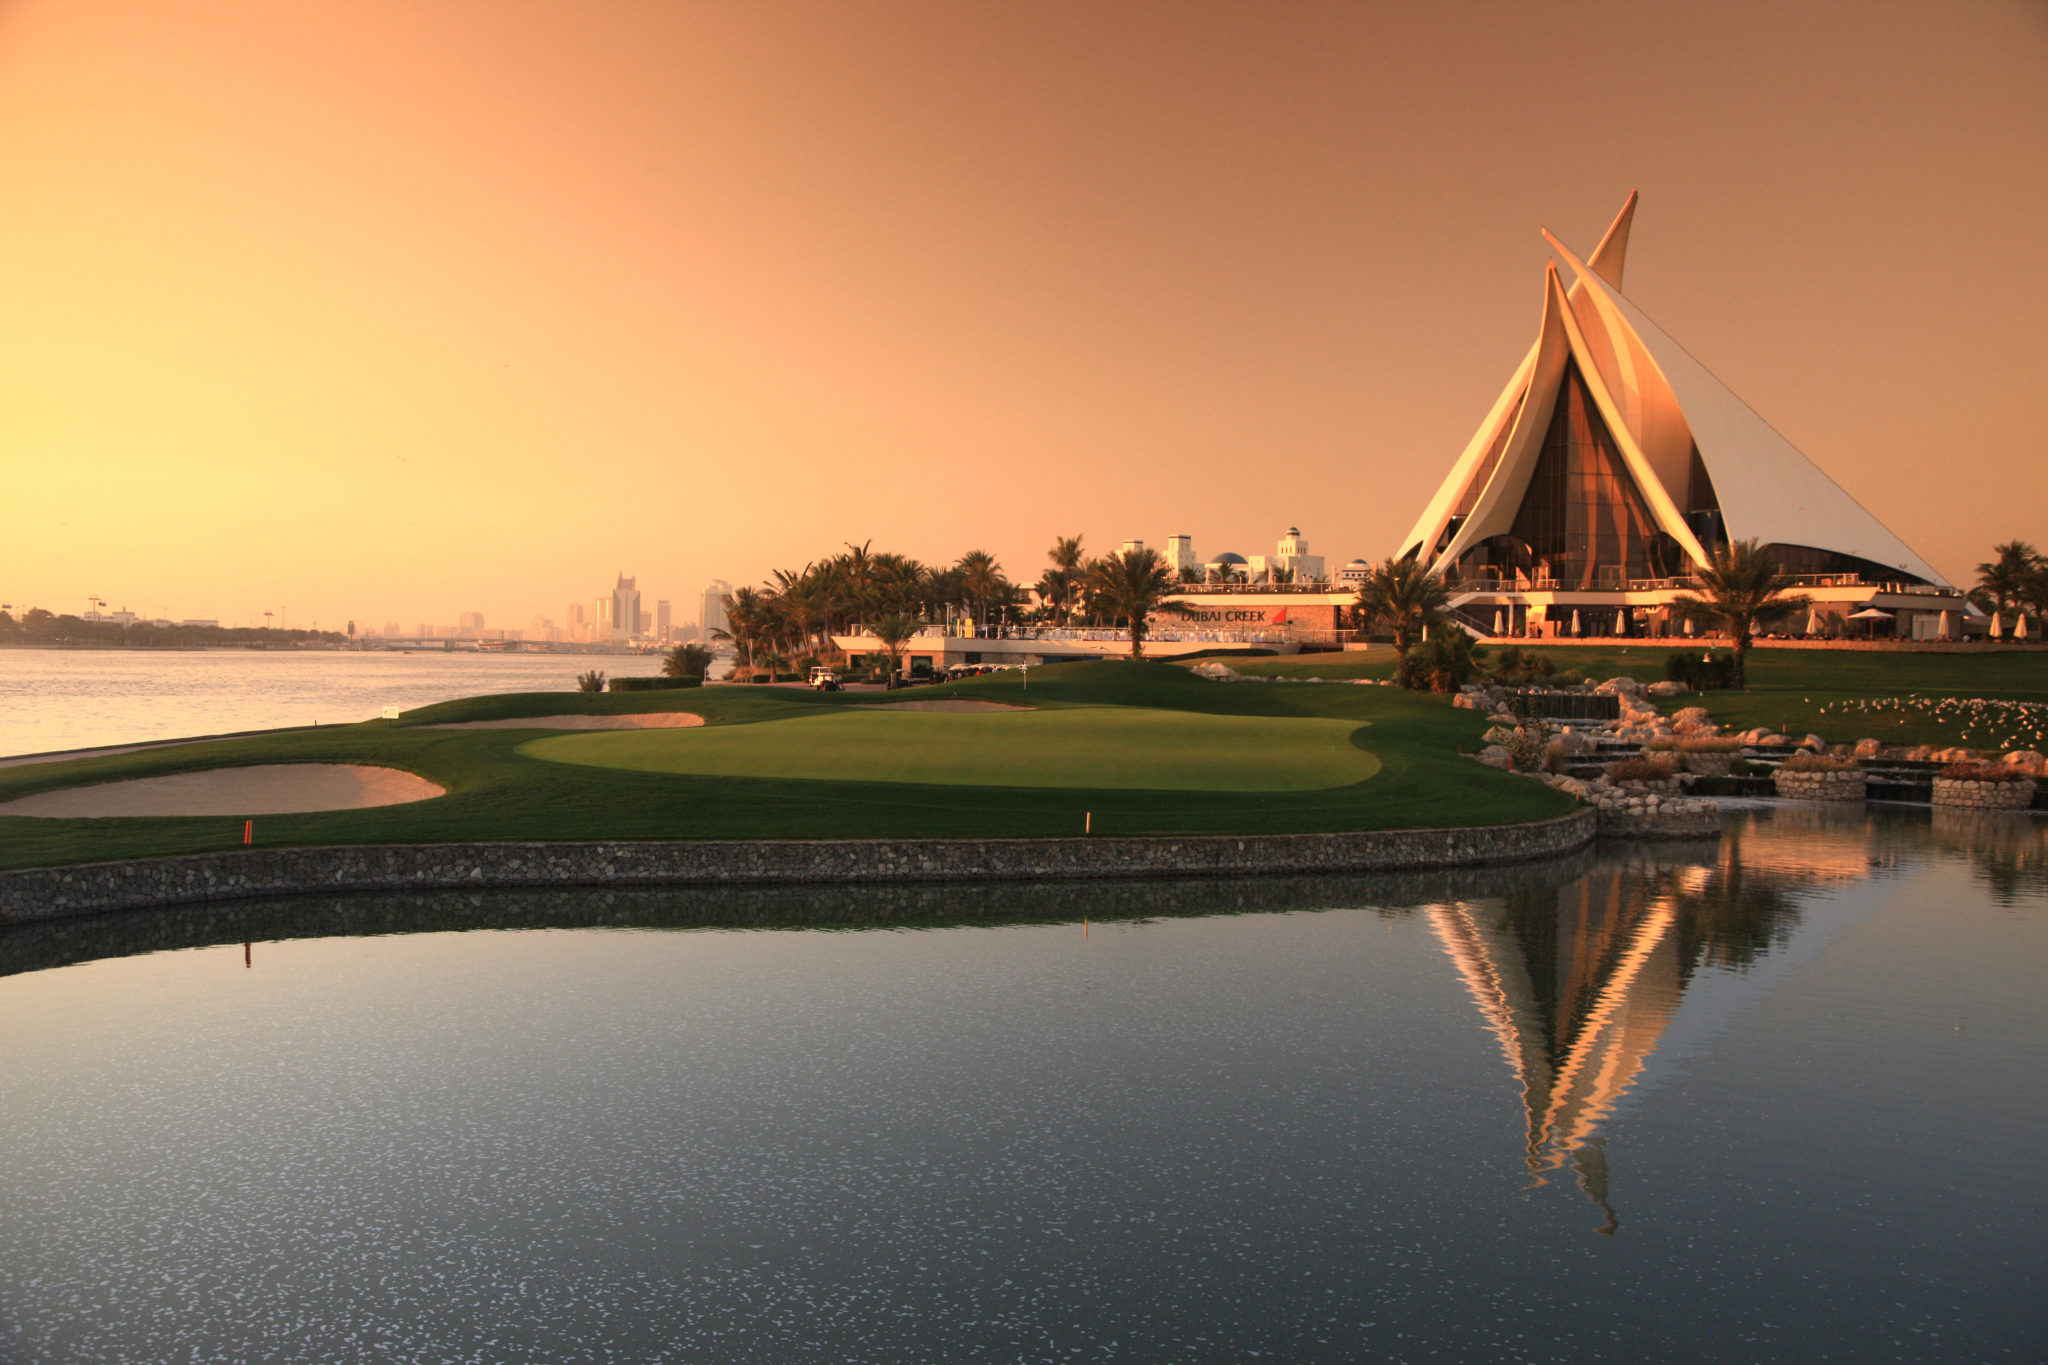 DUBAI - JANUARY 31:  The green on the par 4, 18th hole and the clubhouse at the Dubai Creek Golf and Yacht Club on January 31, 2009 in Dubai, United Arab Emirates.  (Photo by David Cannon/Getty Images)